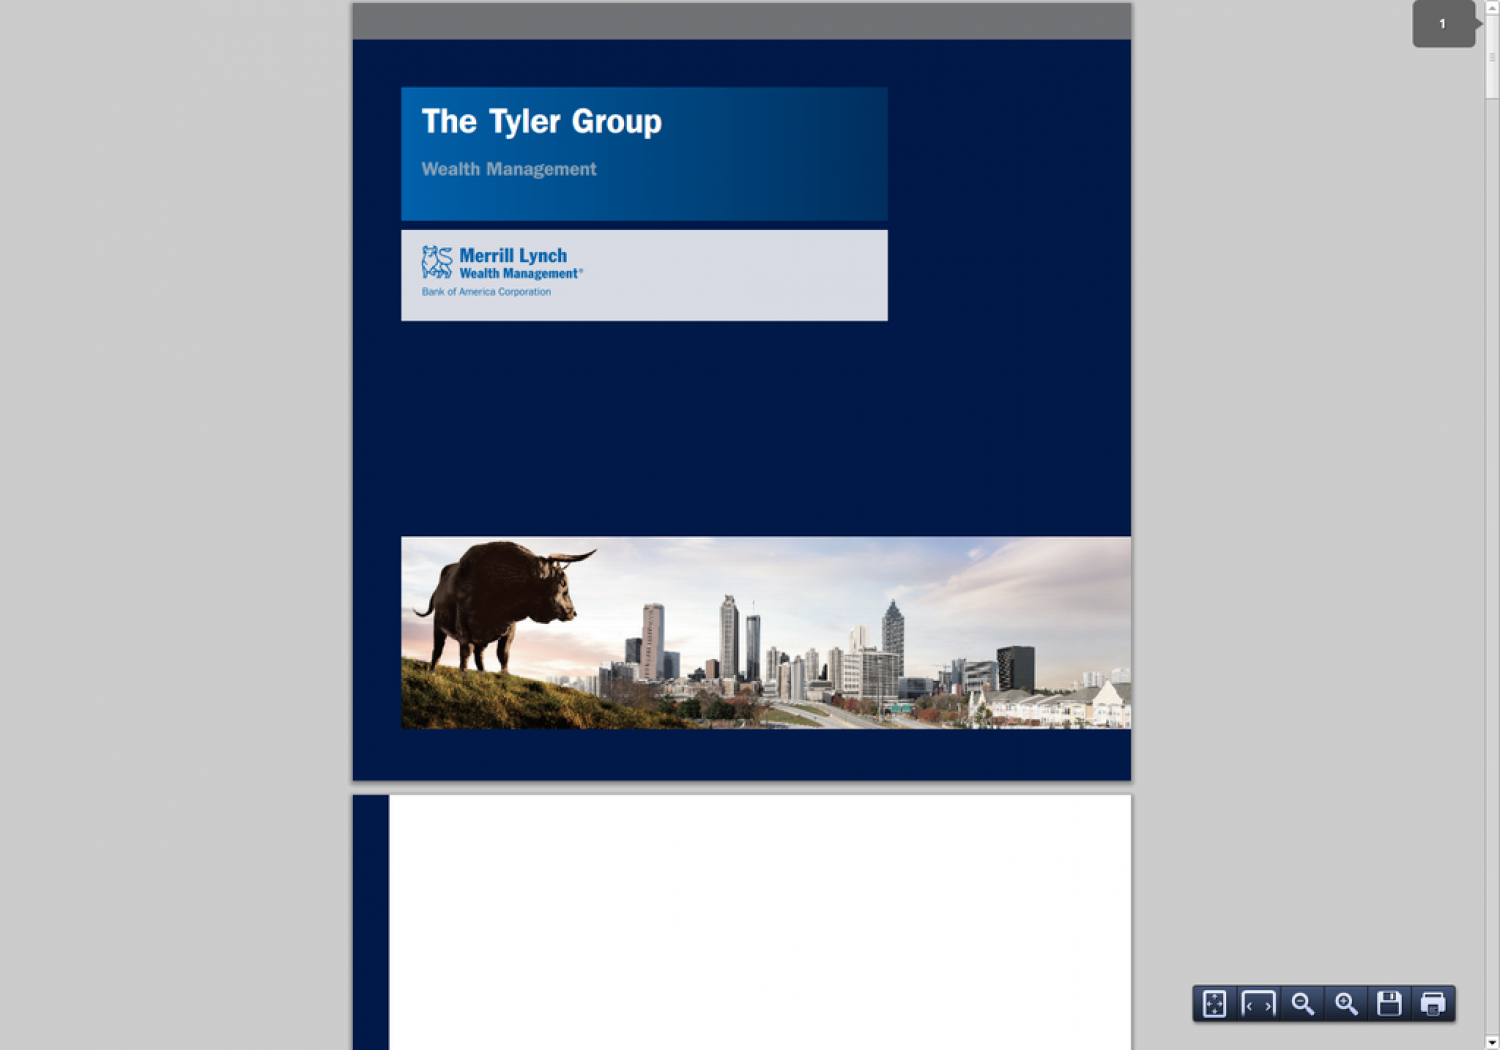 The Tyler Group Wealth Management: Helping to take the emotion out of financial decisions Infographic